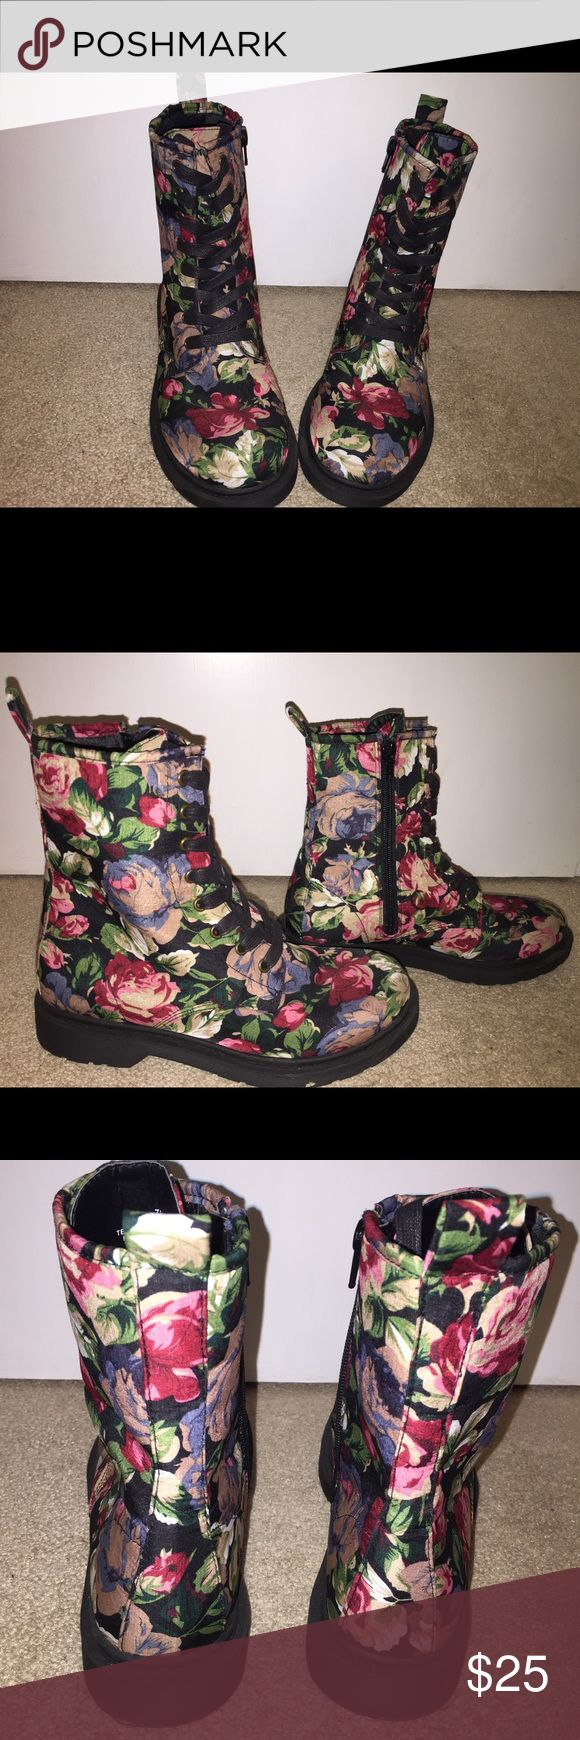 🌺 Mossimo Lace up cloth combat boots Zip UP sides This pair of floral/flower Zip side, Lace up Combat Boots. I wore these very briefly and are in perfect condition. They are so cute!! Size 7.5 by Mossimo Mossimo Supply Co Shoes Combat & Moto Boots